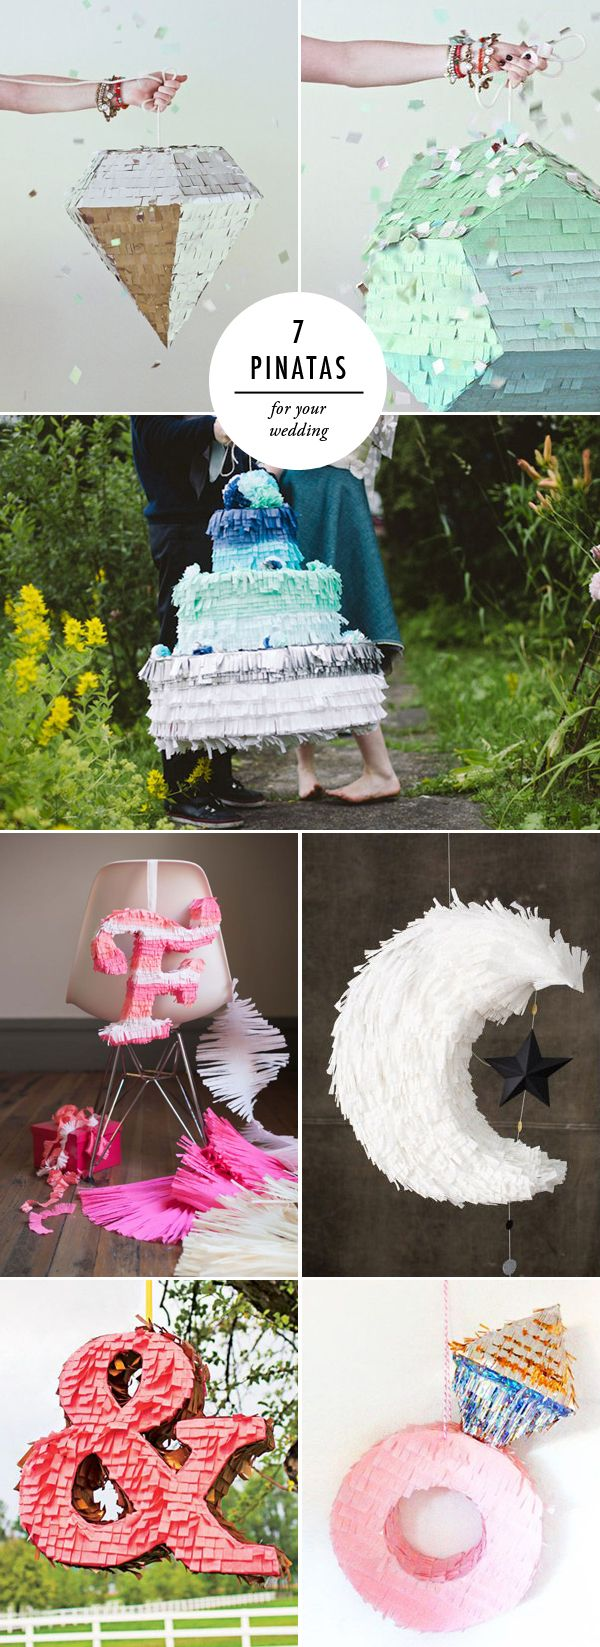 7-wedding-pinatas from brooklyn bride. I love the ring one!